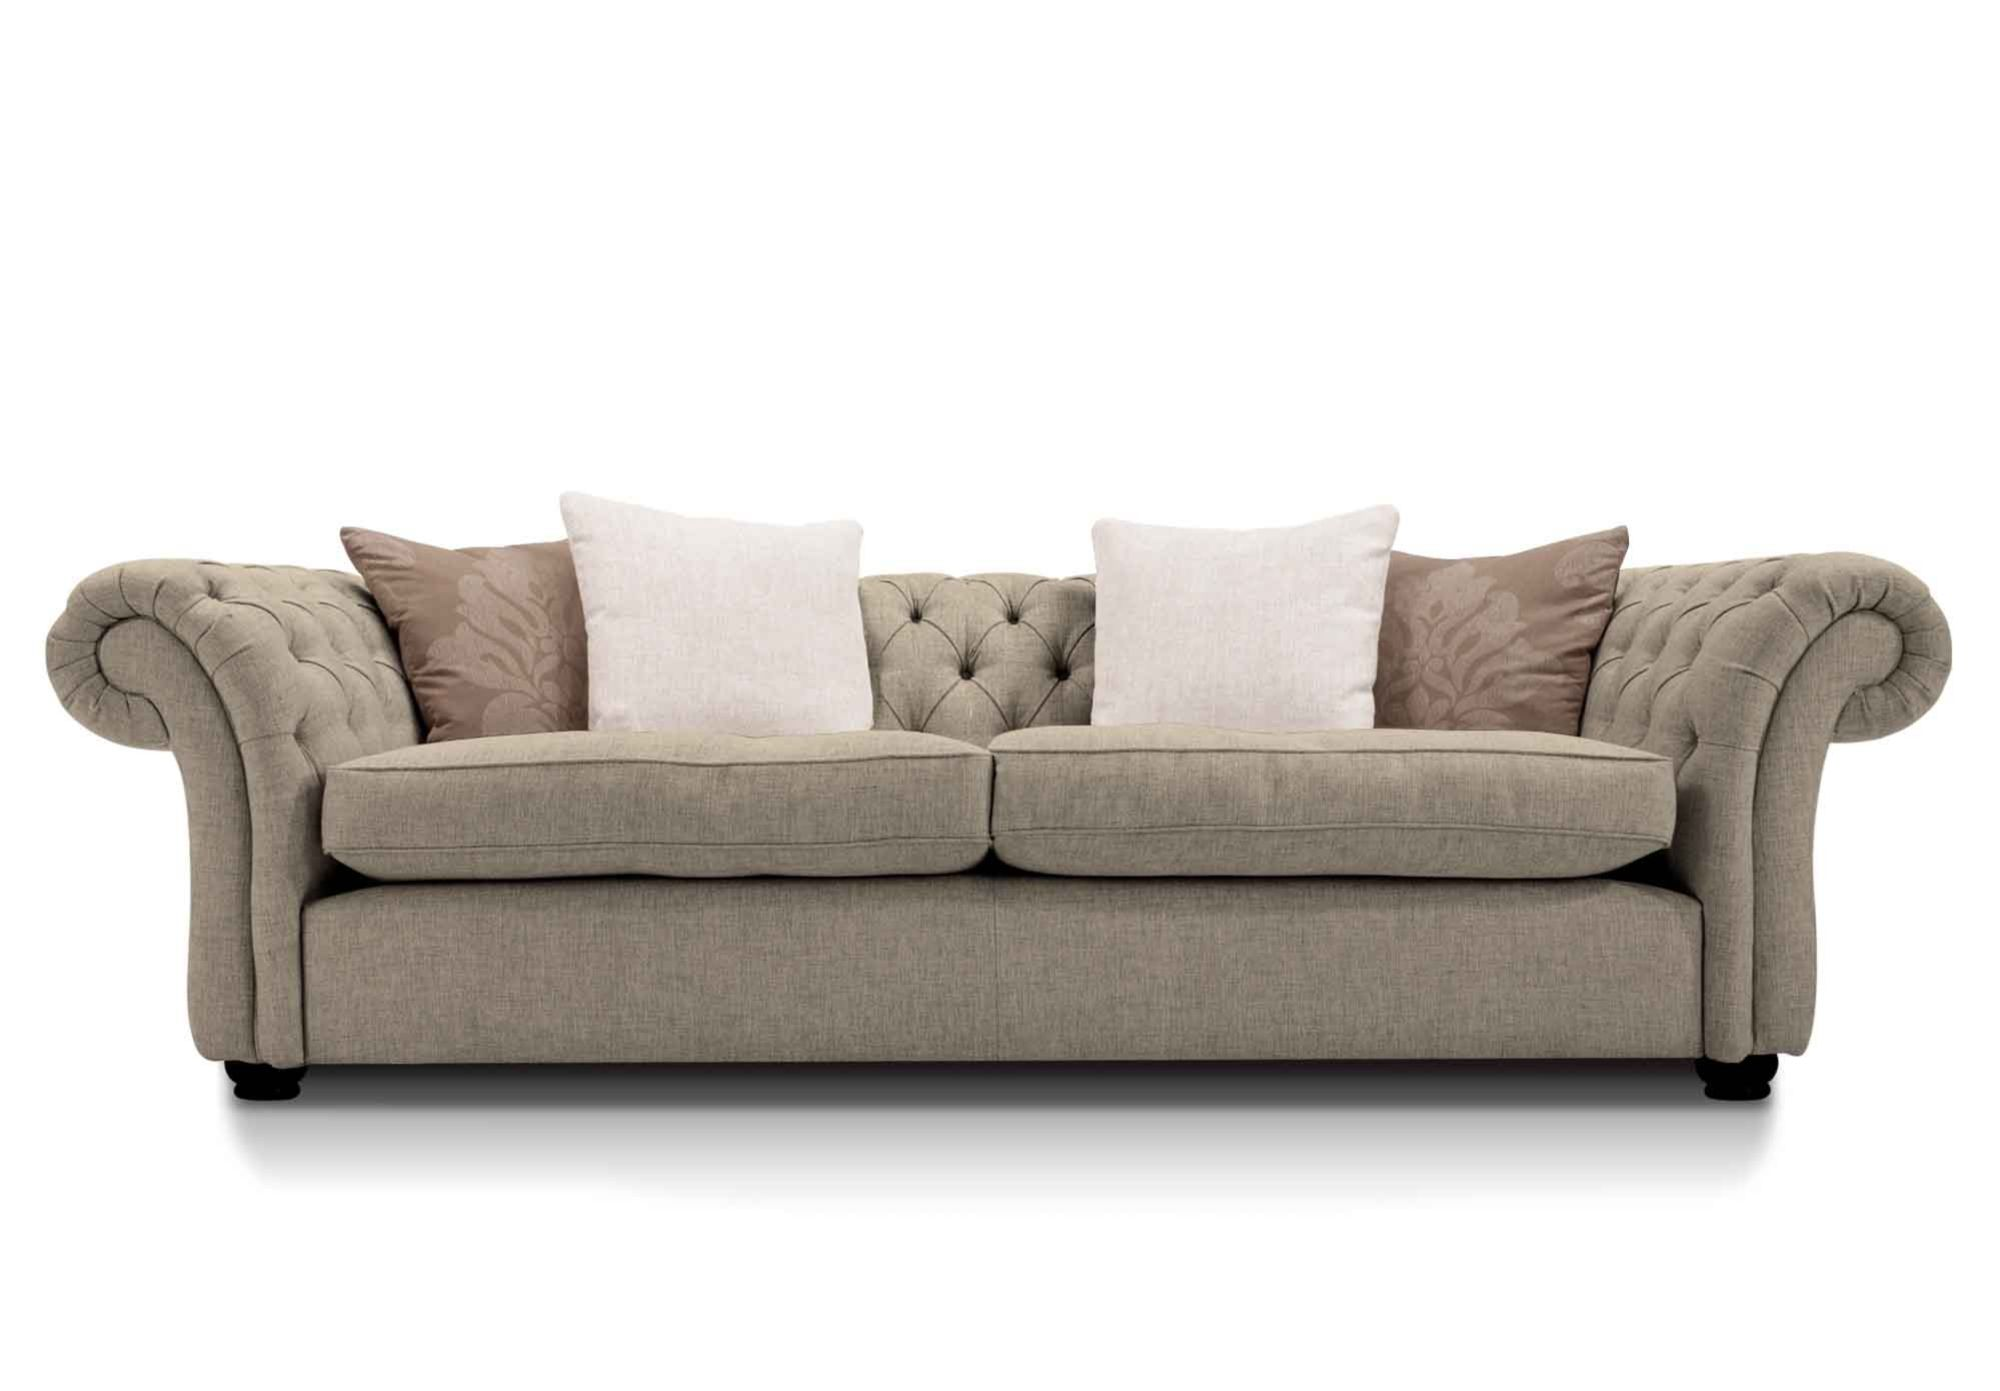 3 seater sofa langham living room furniture sofas for Furniture village sofa